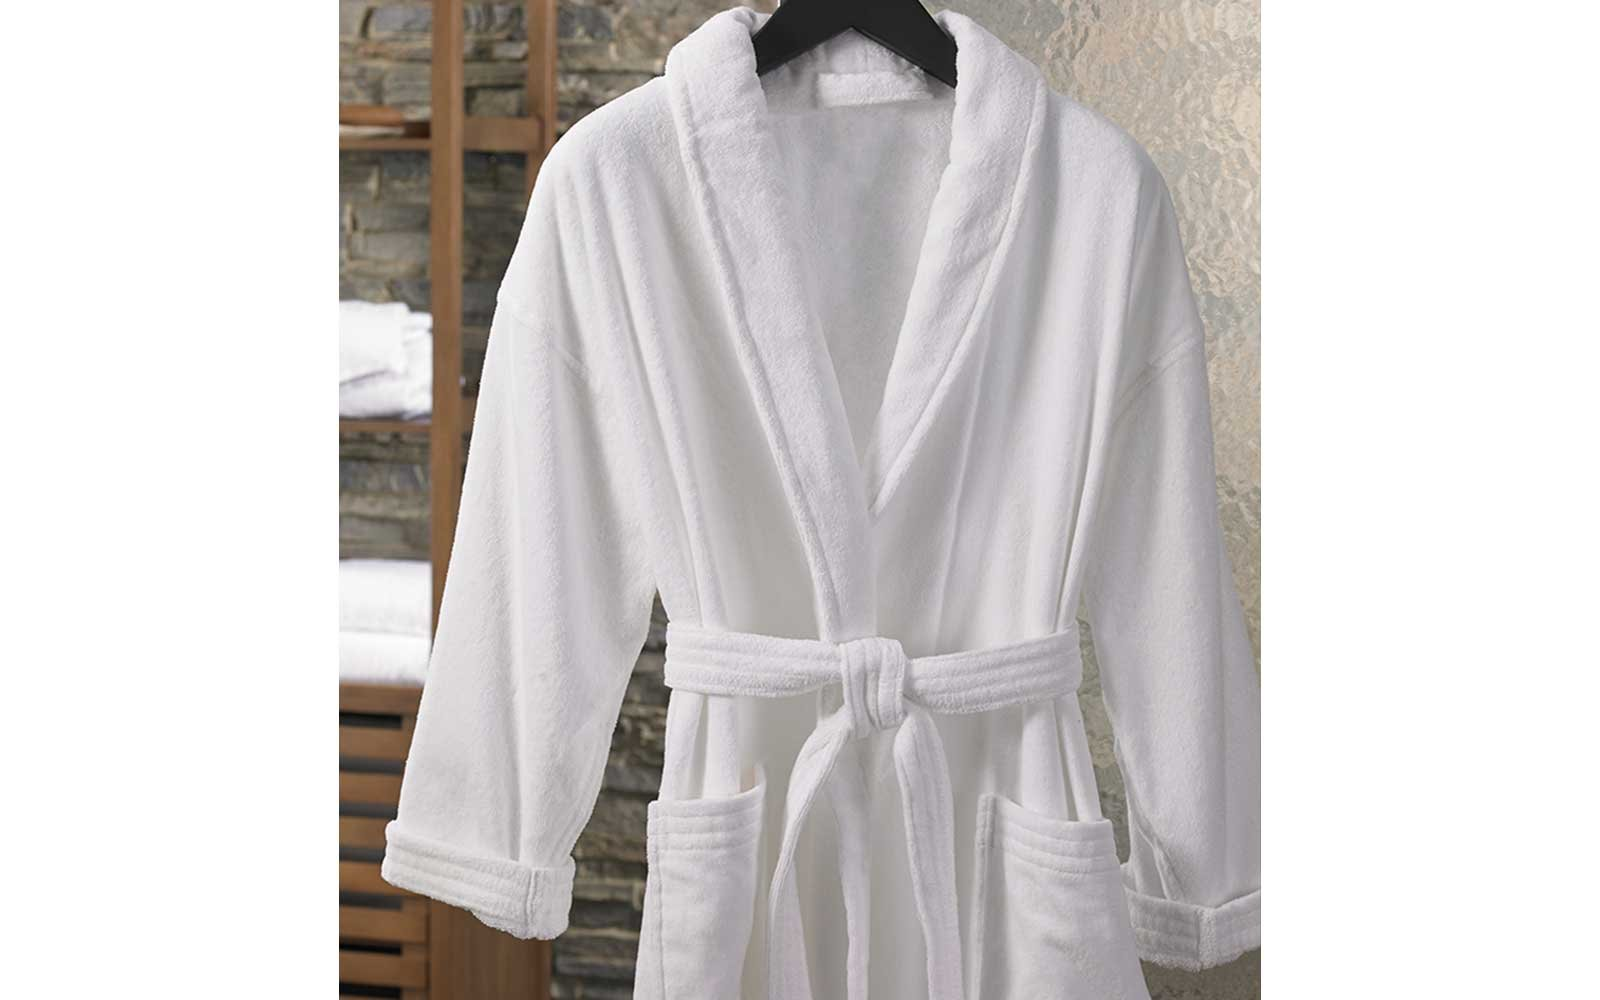 14 Luxury Hotel-quality Bathrobes You Can Buy Online